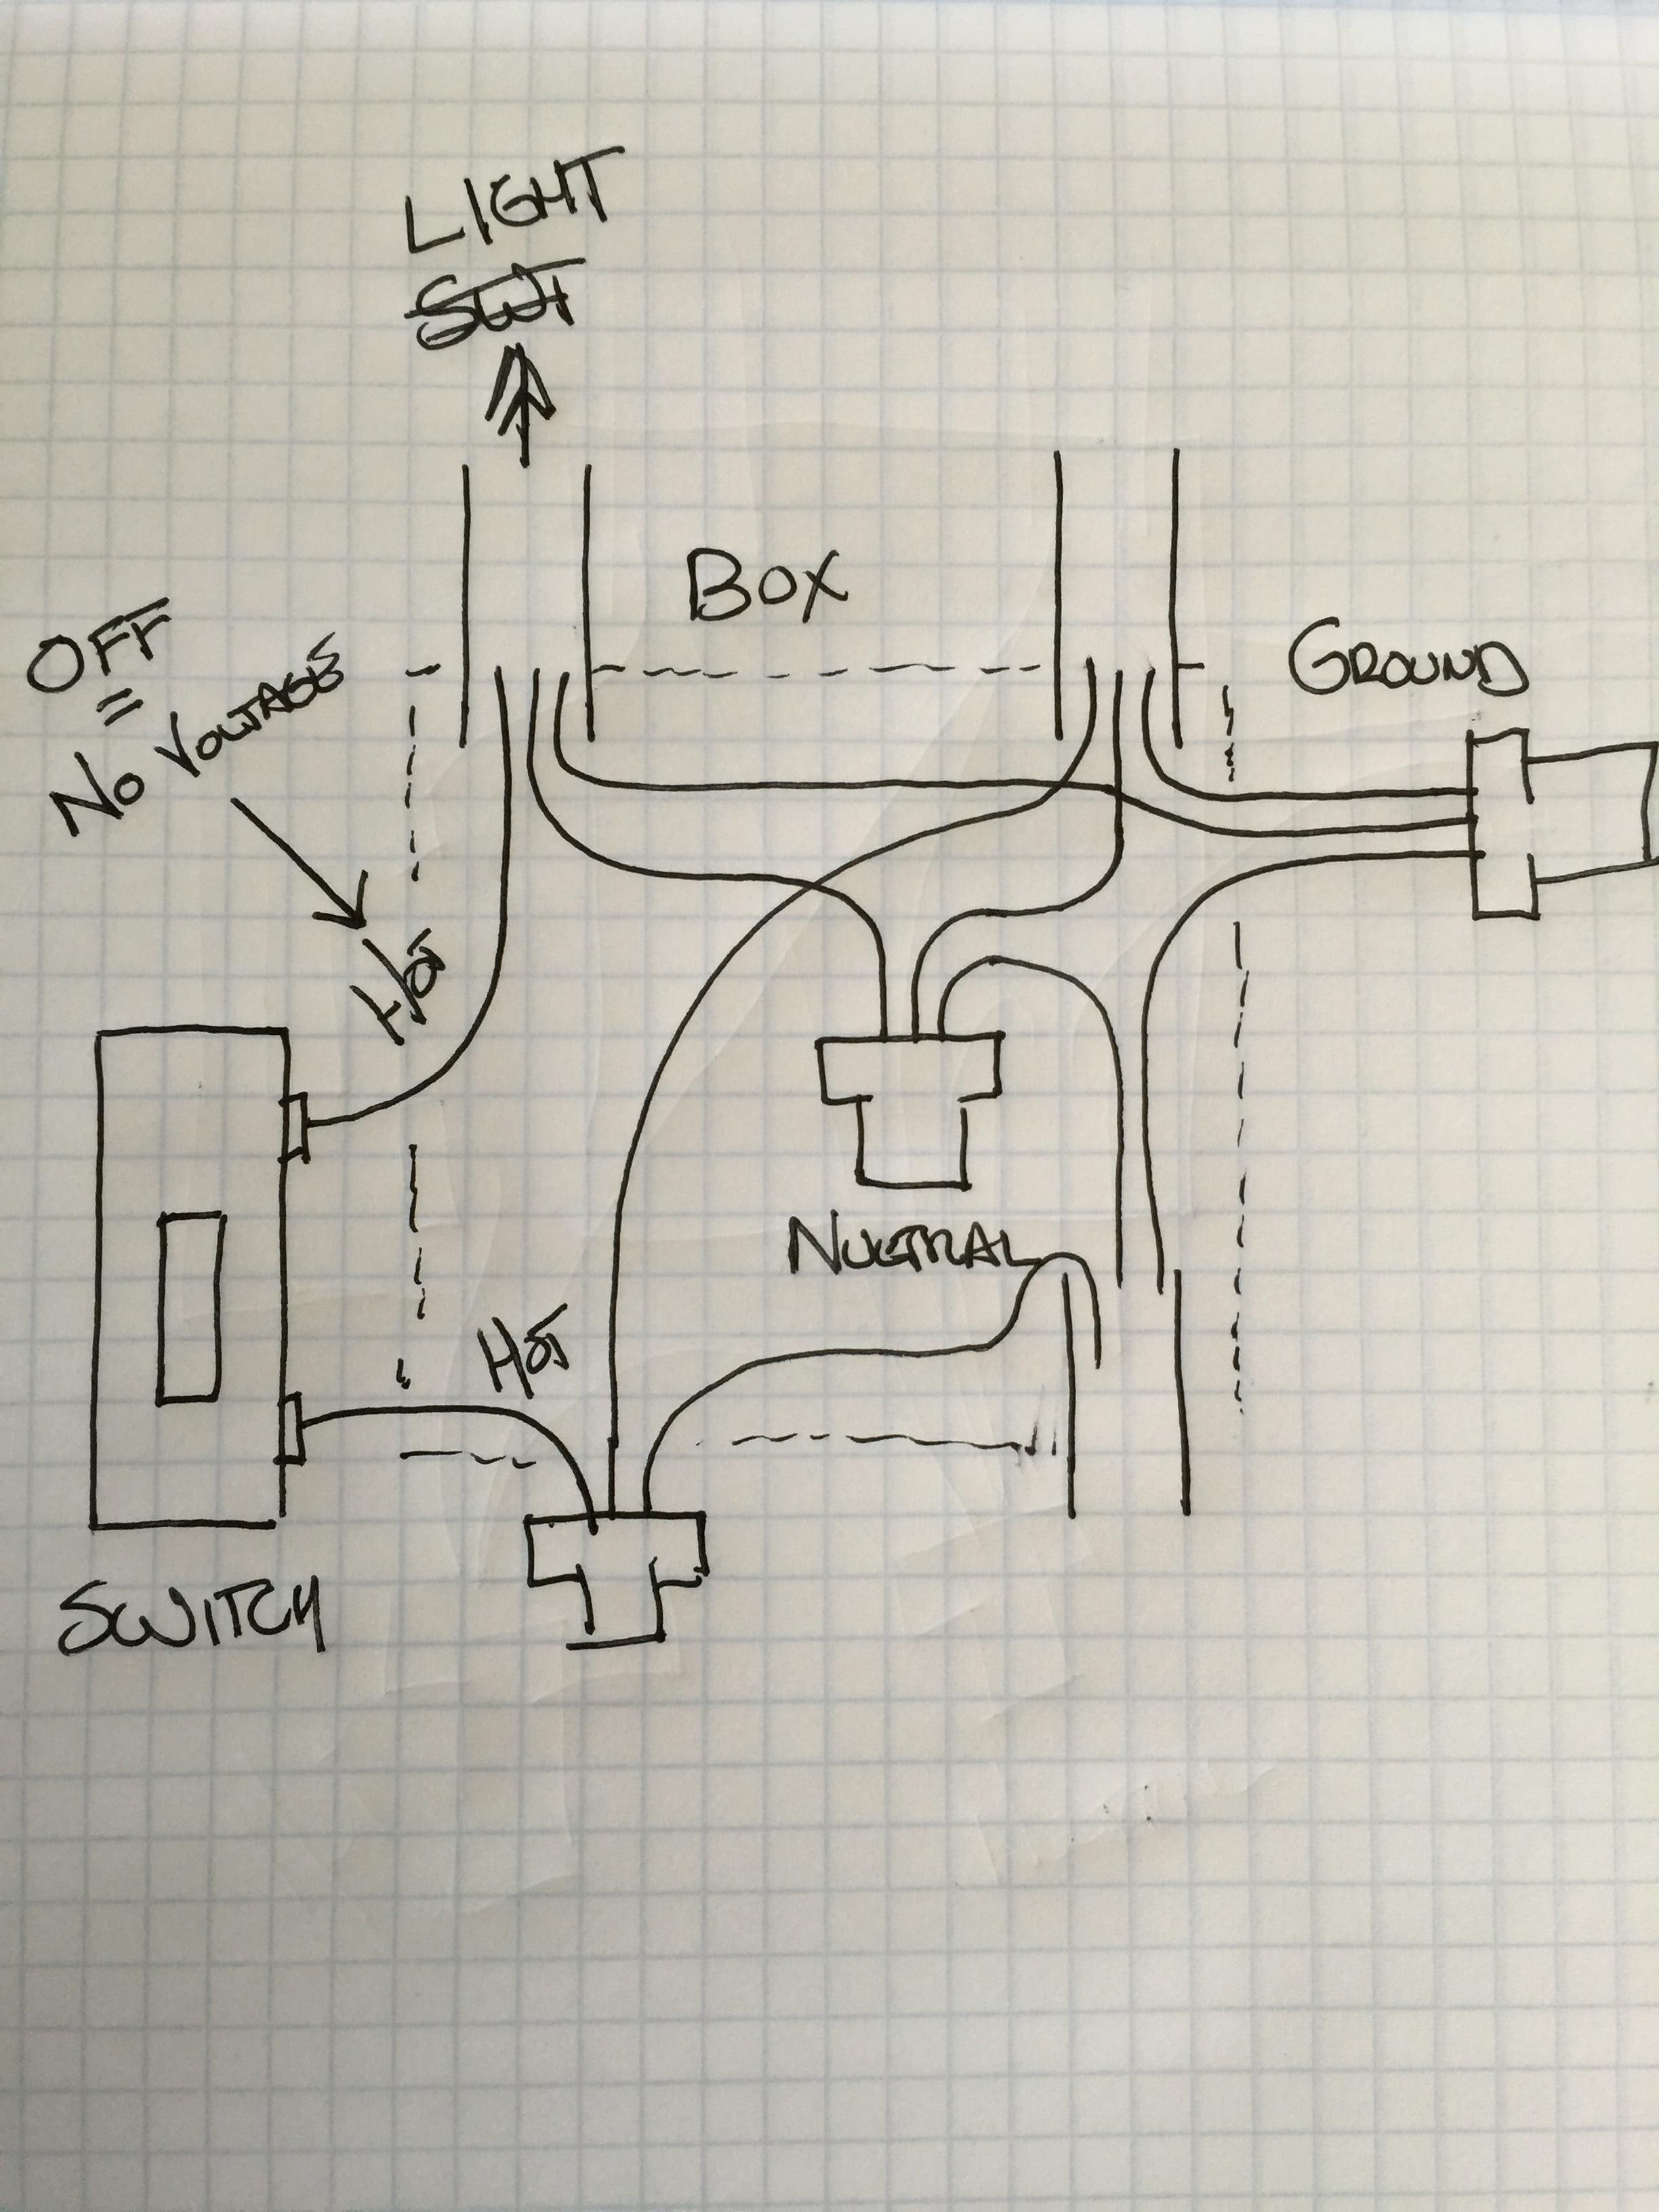 two way switch wiring diagram for lights oil furnace thermostat electrical how can i replace a single pole light